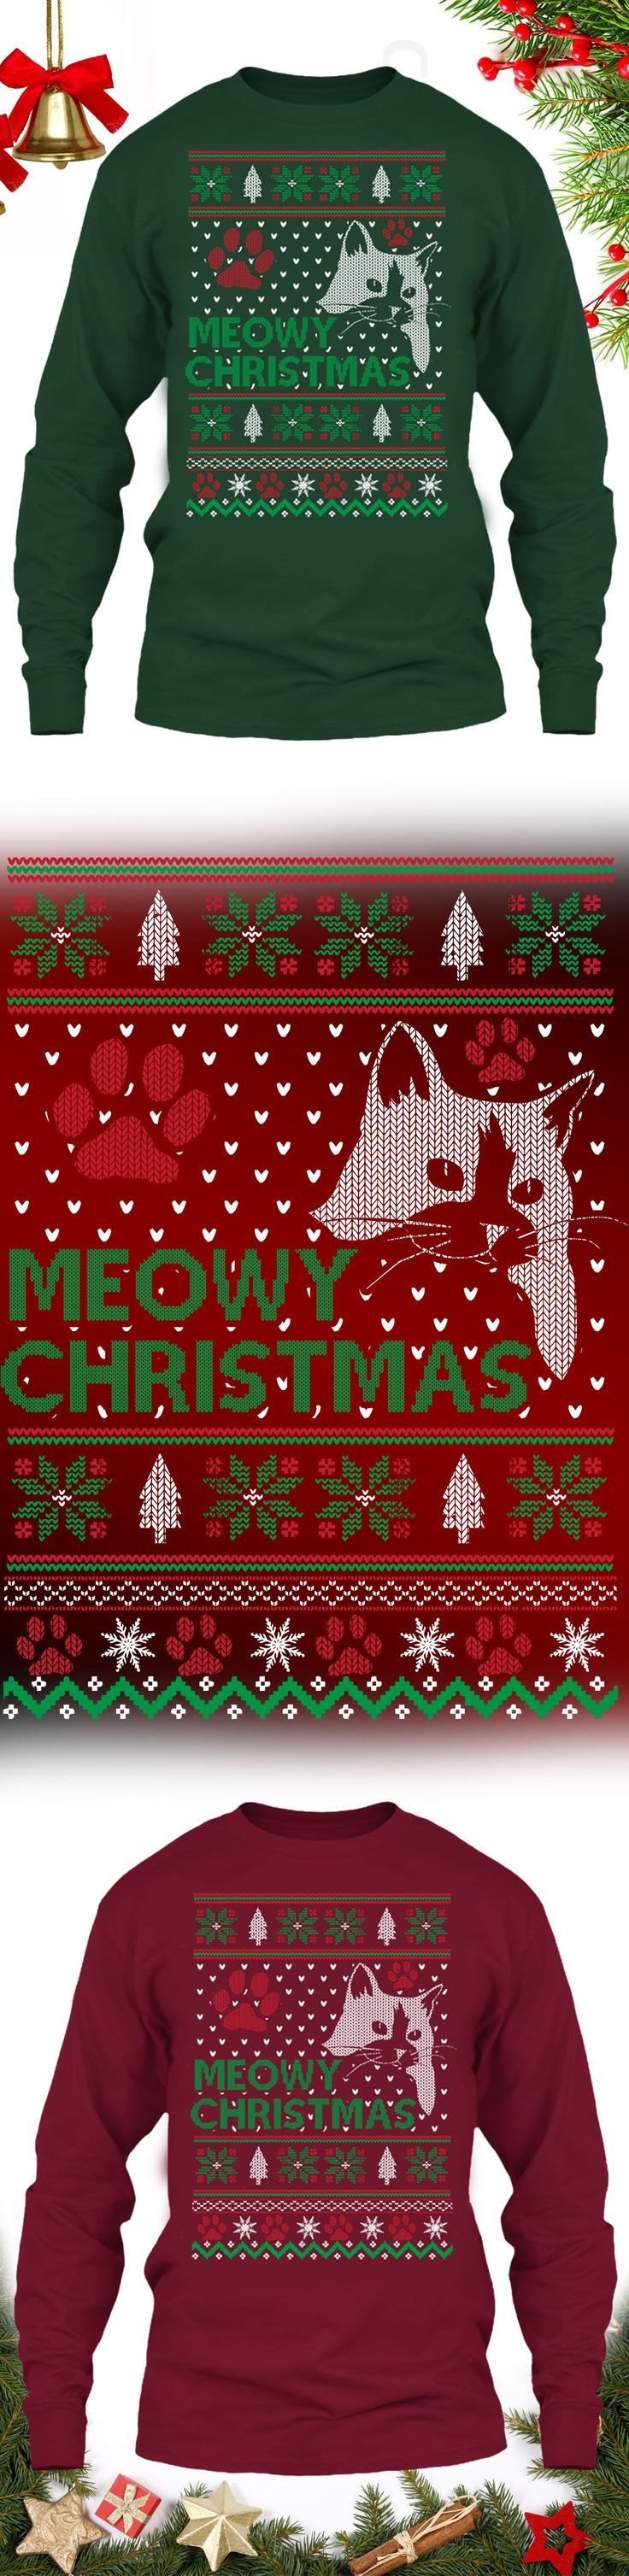 Meowy Cat Christmas Sweater - Get this limited edition ugly Christmas Sweater just in time for the holidays! Only 2 days left for FREE SHIPPING, click to buy now!